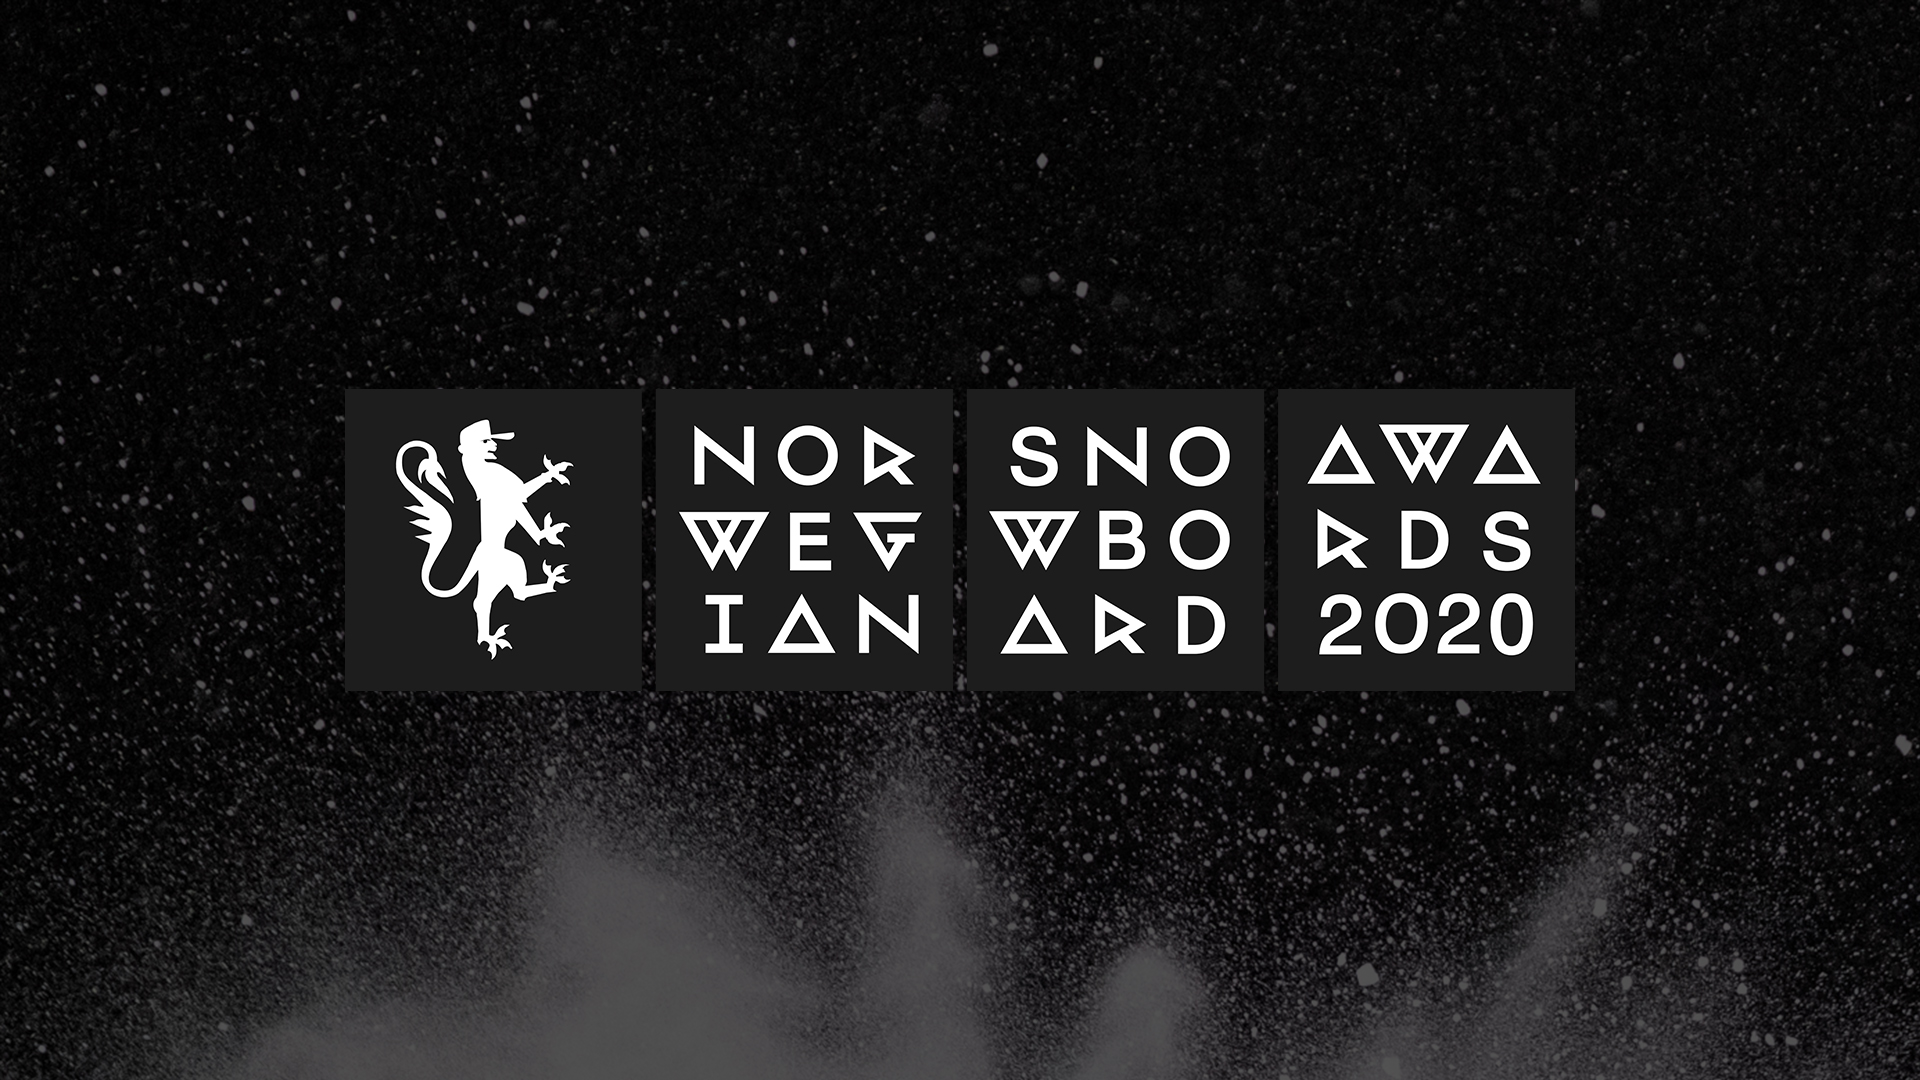 SNOWBOARDAWARDS 2020